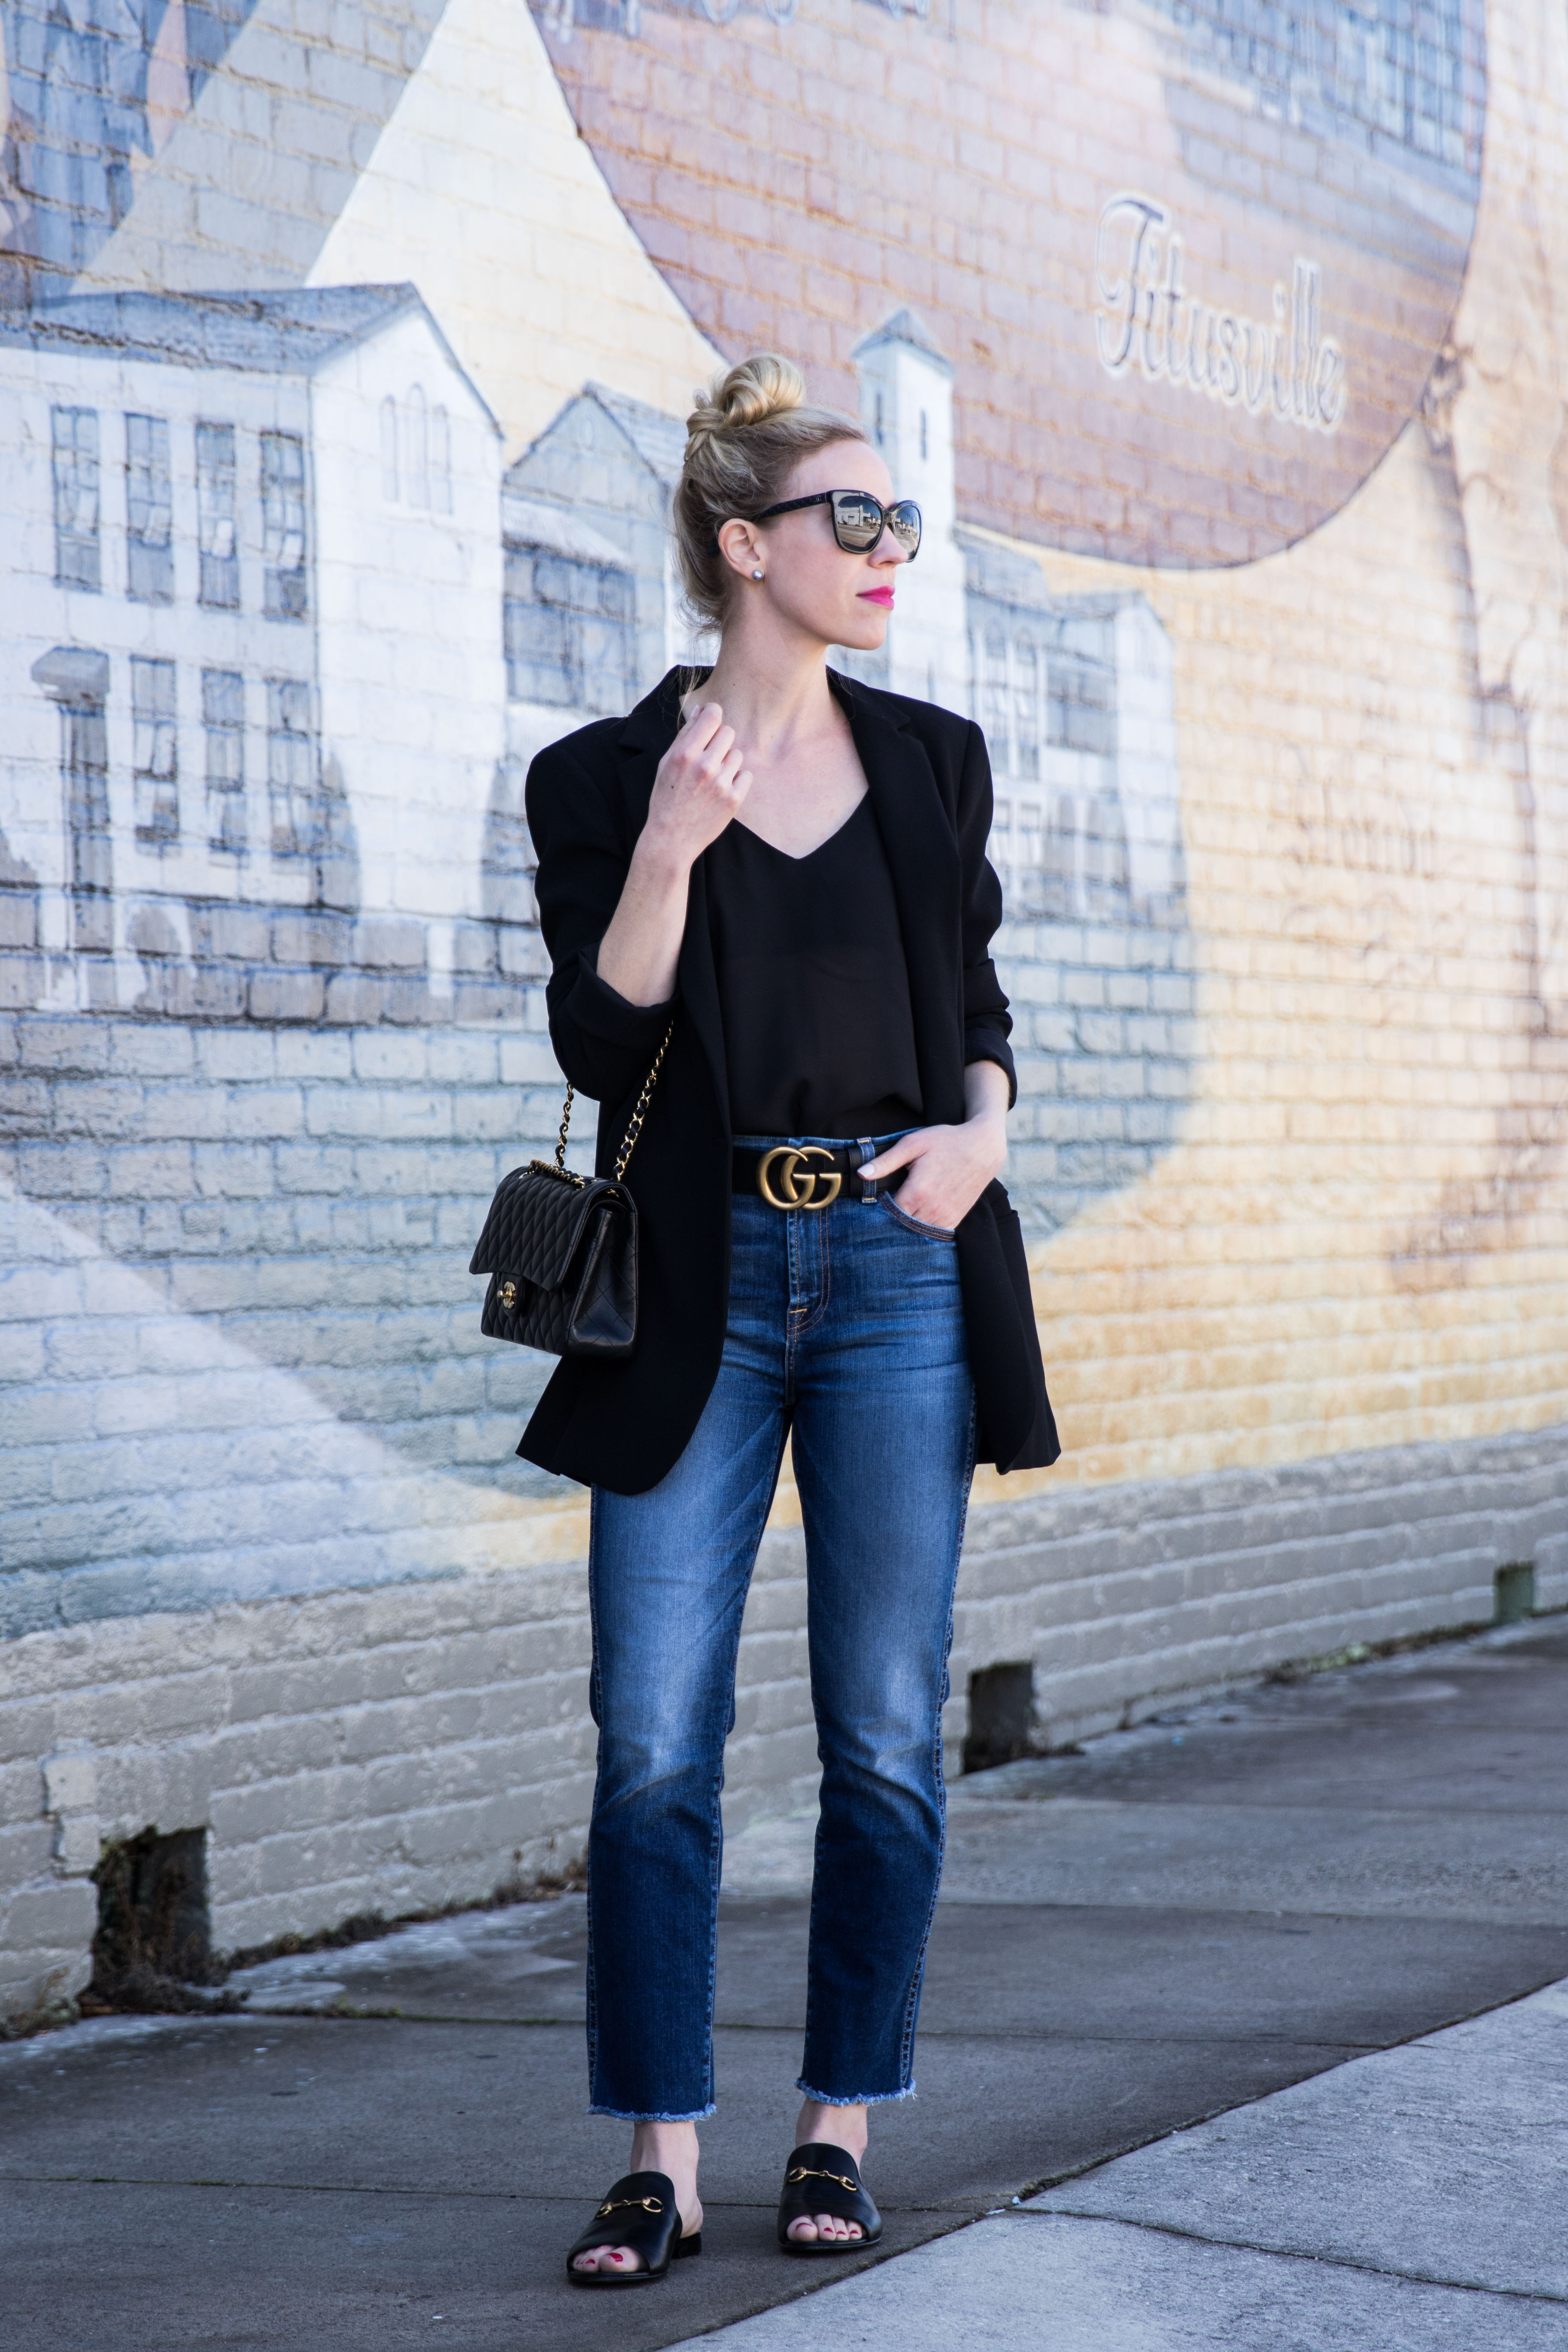 f0ccf3a8c6b Meagan Brandon fashion blogger wearing long black blazer with Gucci Marmont  belt and straight leg jeans with Gucci slide sandals